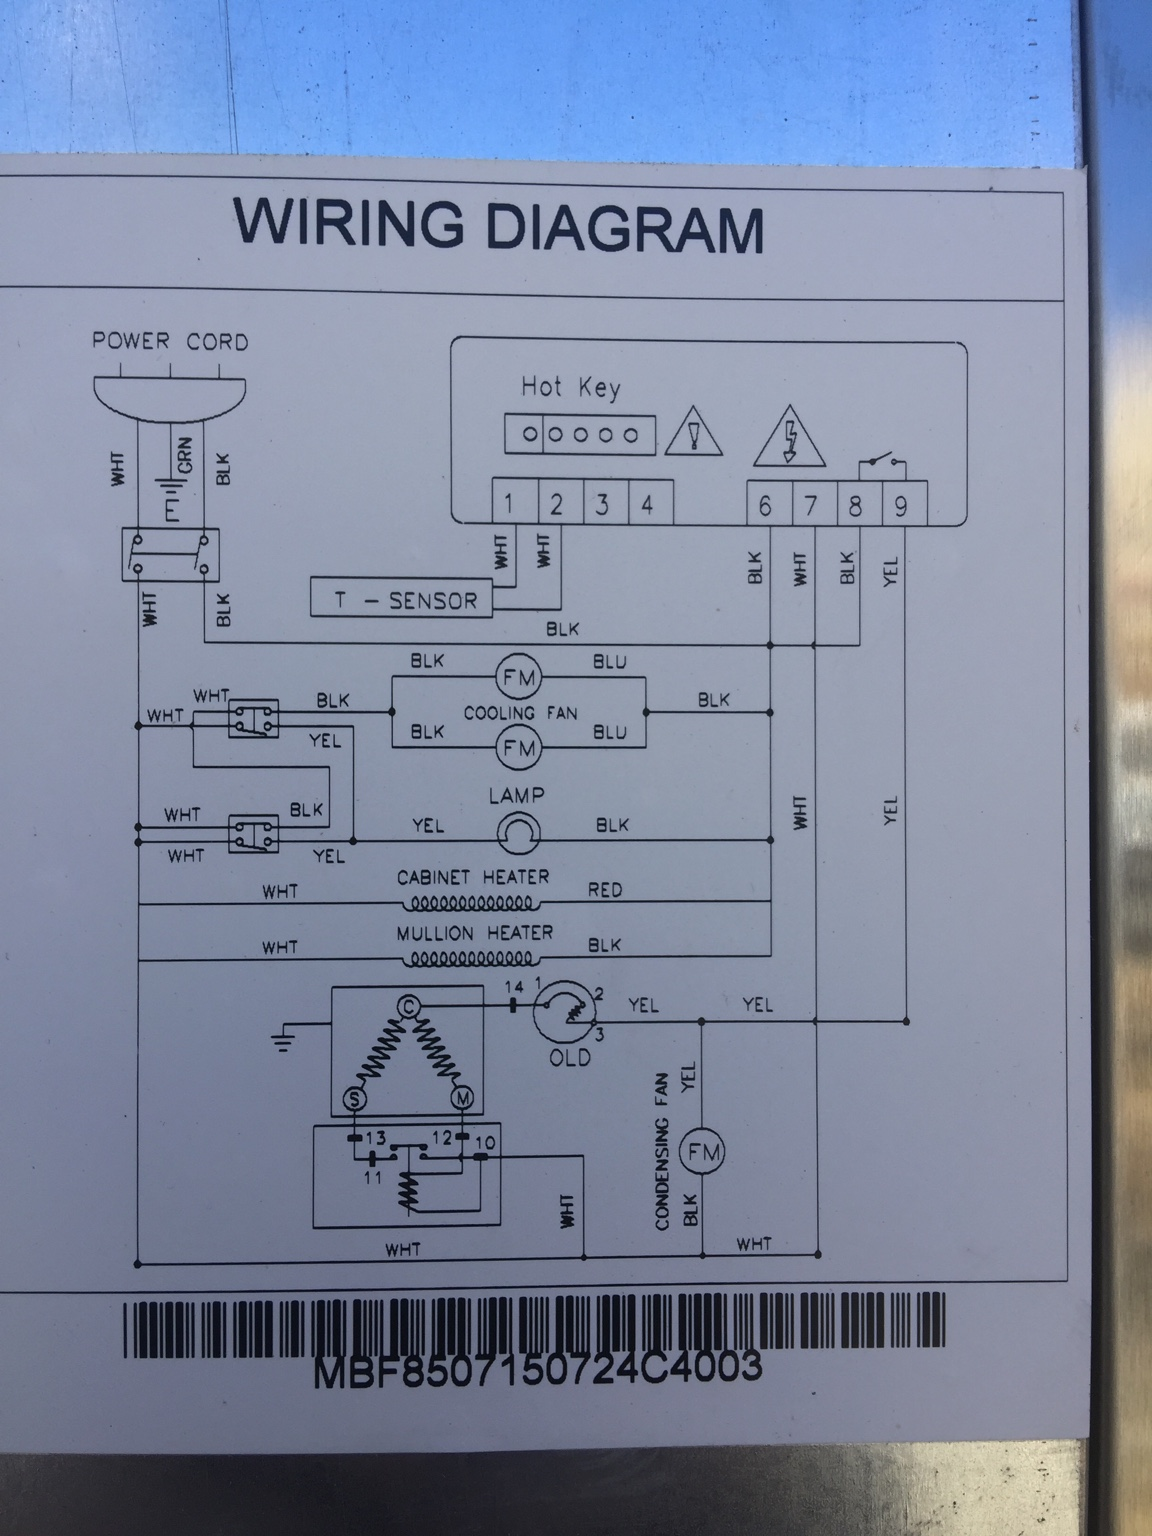 Reach In Coolers For Control Wiring | Wiring Diagram on